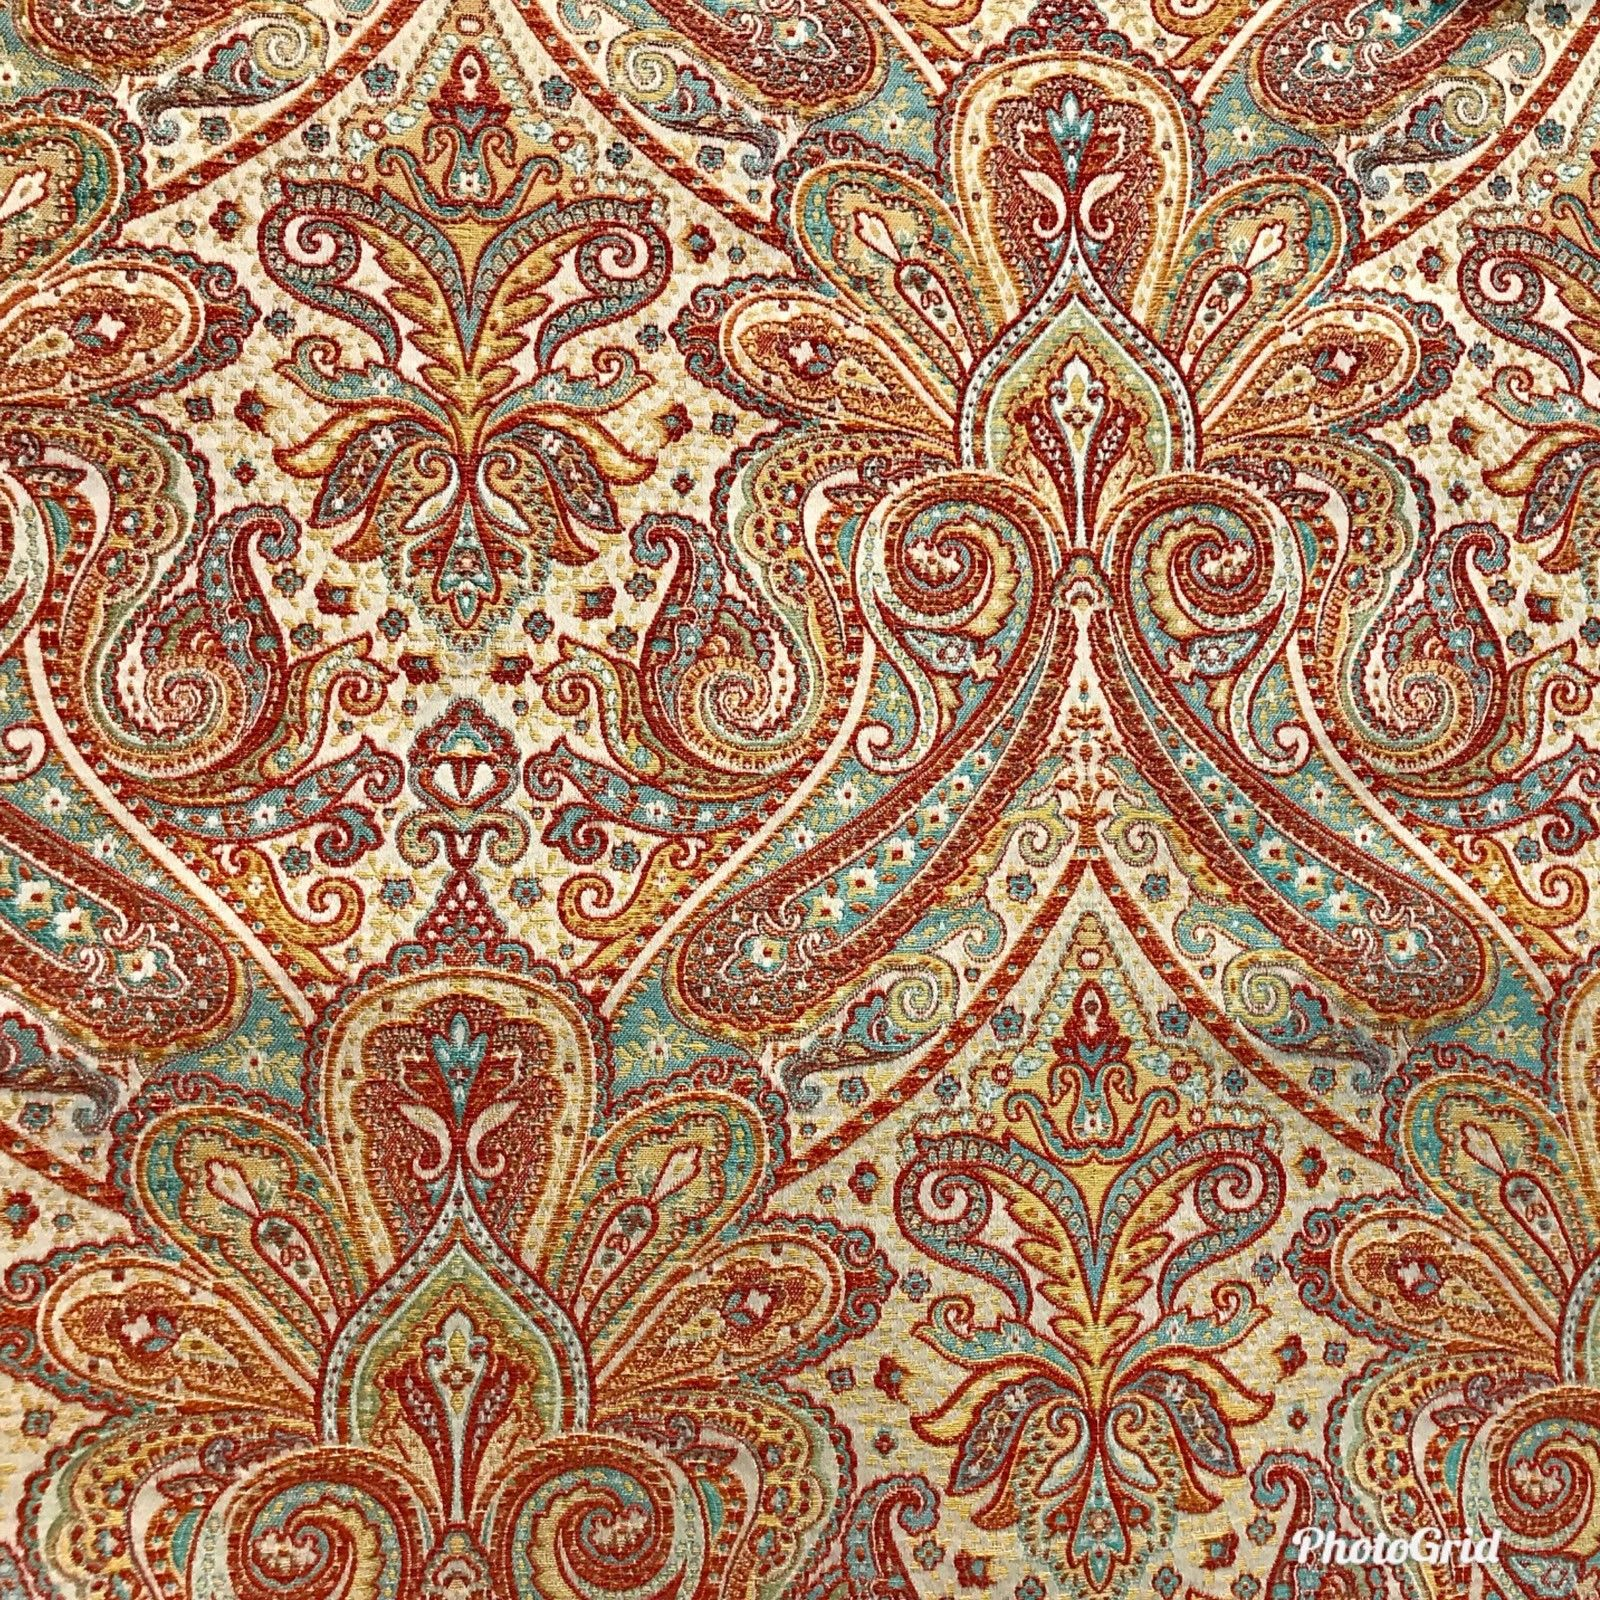 "SWATCH 4"" X 7"" - Antique Inspired Paisley Brocade Satin Fabric- Upholstery - Fancy Styles Fabric Boutique"